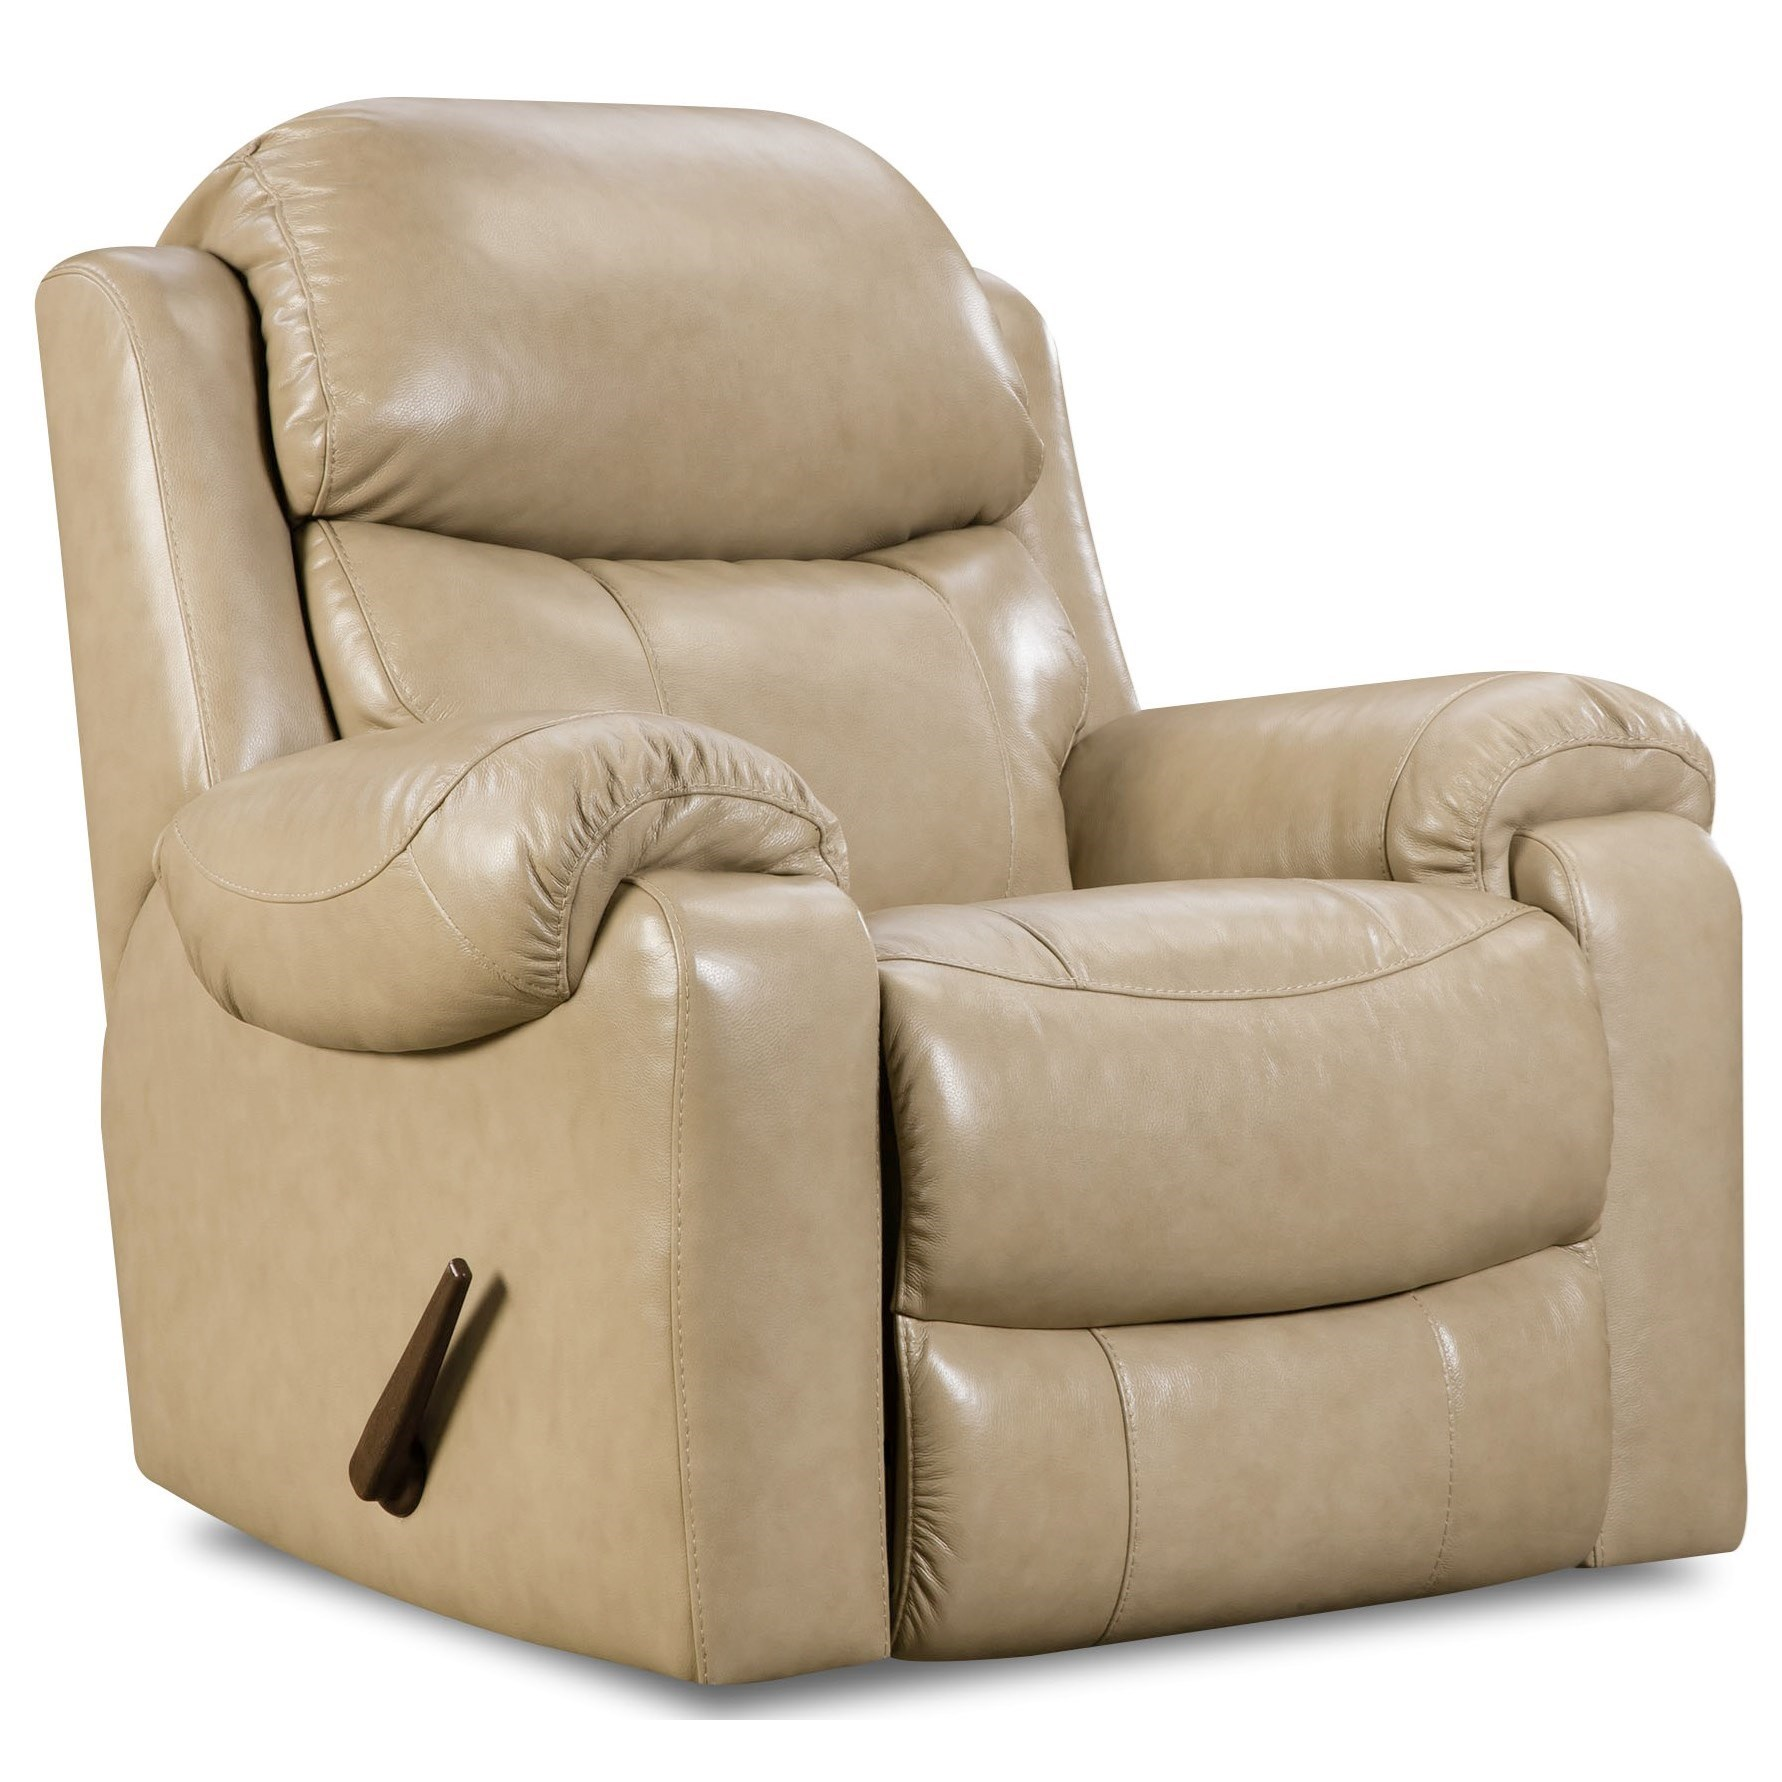 Recliner Pillow Homestretch 135 Collection Power Rocker Recliner With Pillow Arms